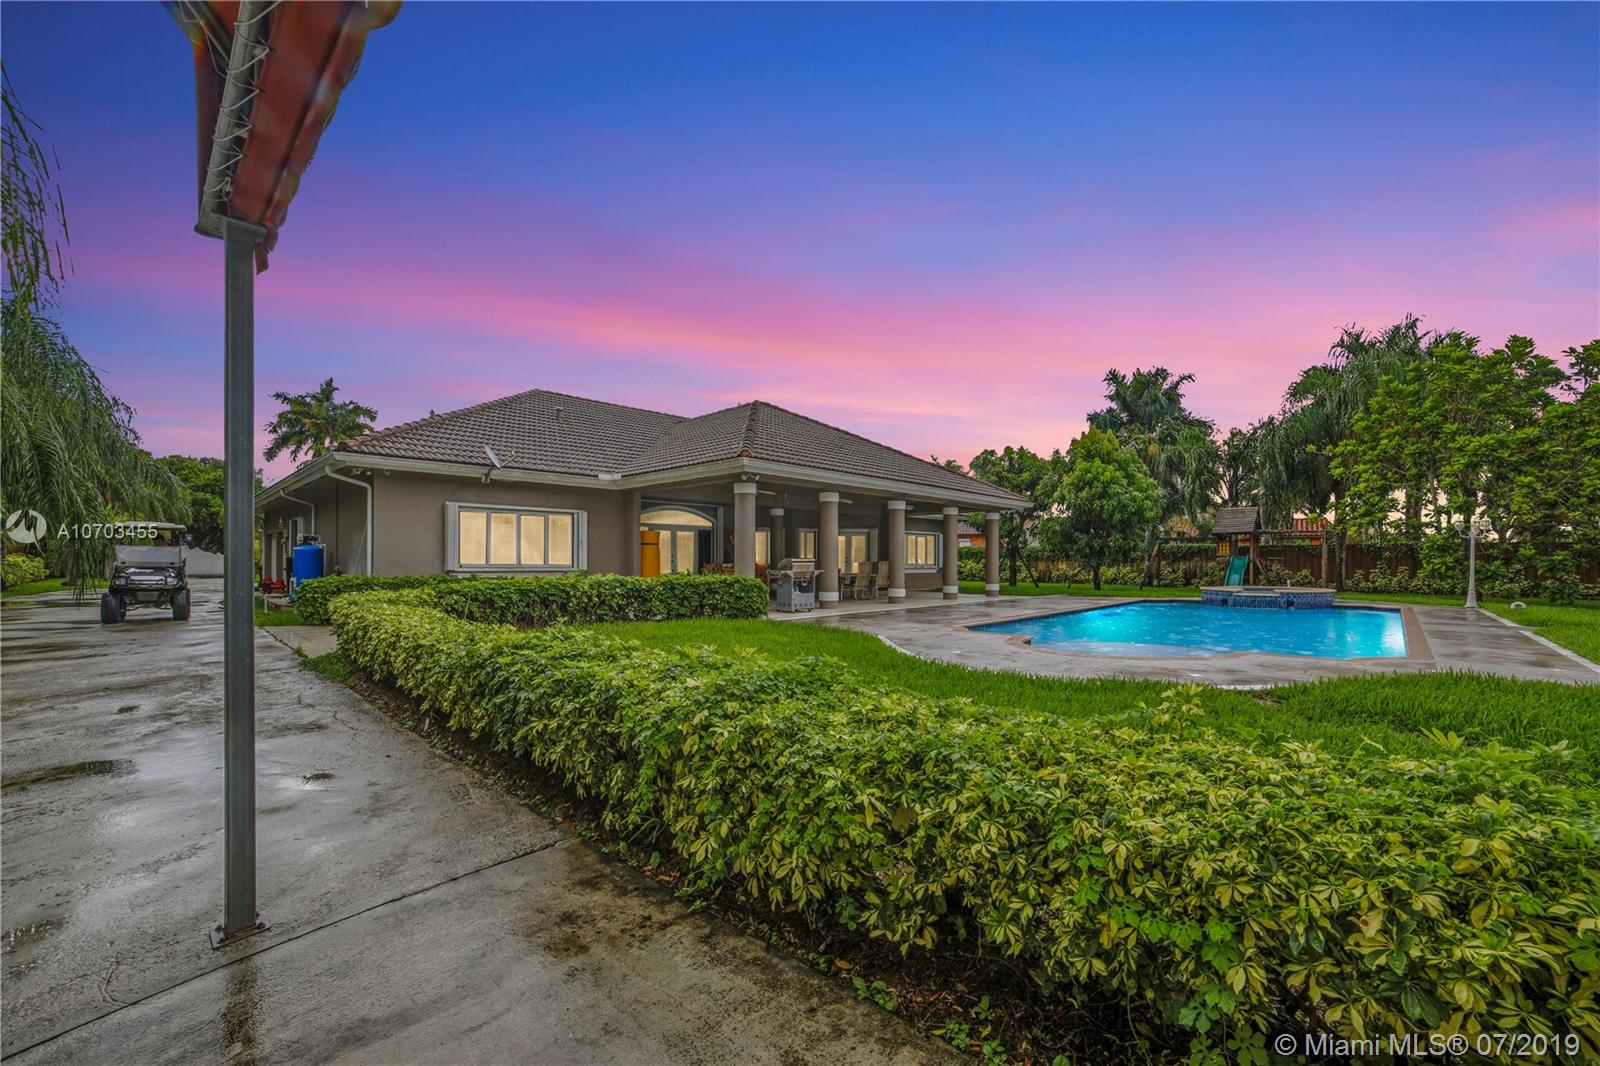 27400 SW 153rd Ave, Homestead, FL 33032